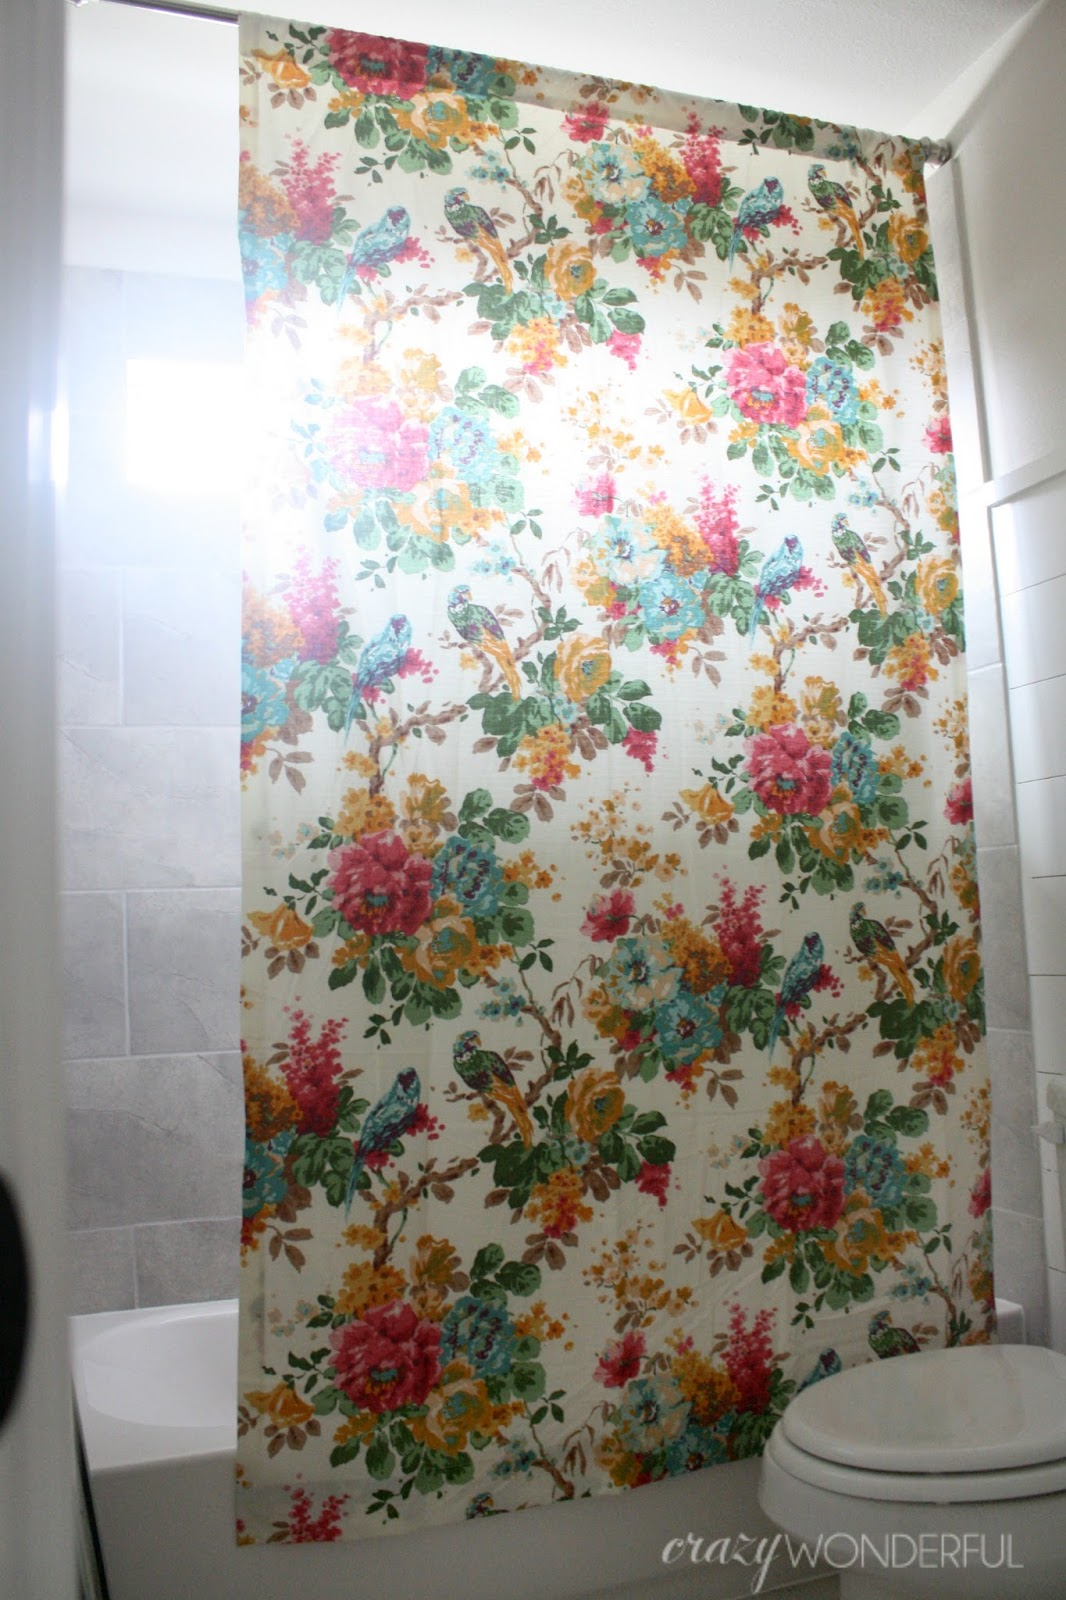 Turn Window Shower : How to turn a window curtain into shower crazy